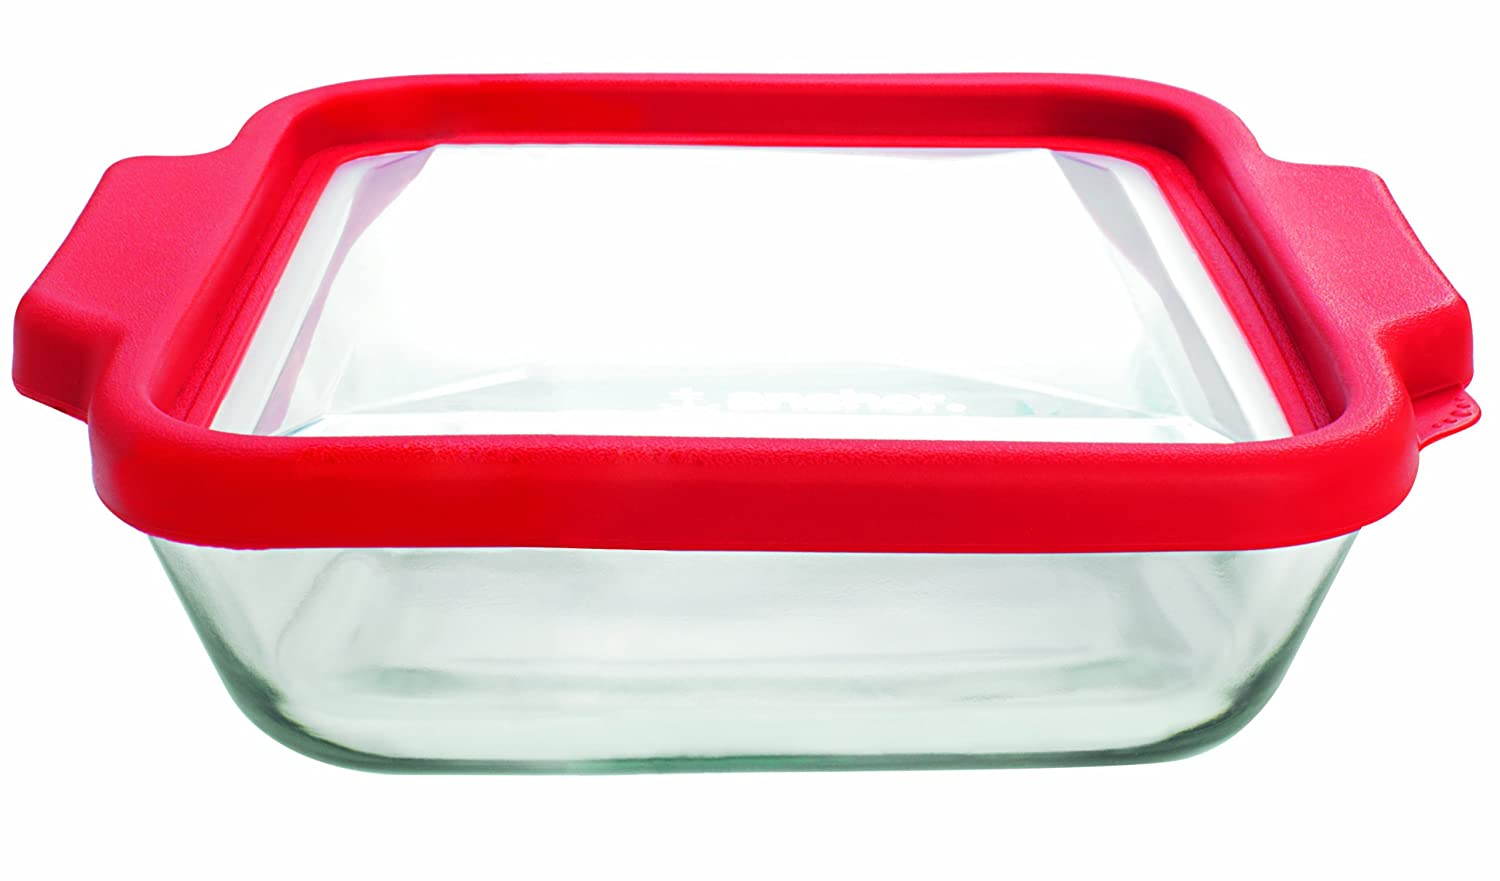 Anchor Hocking 8-InchSquare Glass Baking Dish with Cherry TrueFit Lid